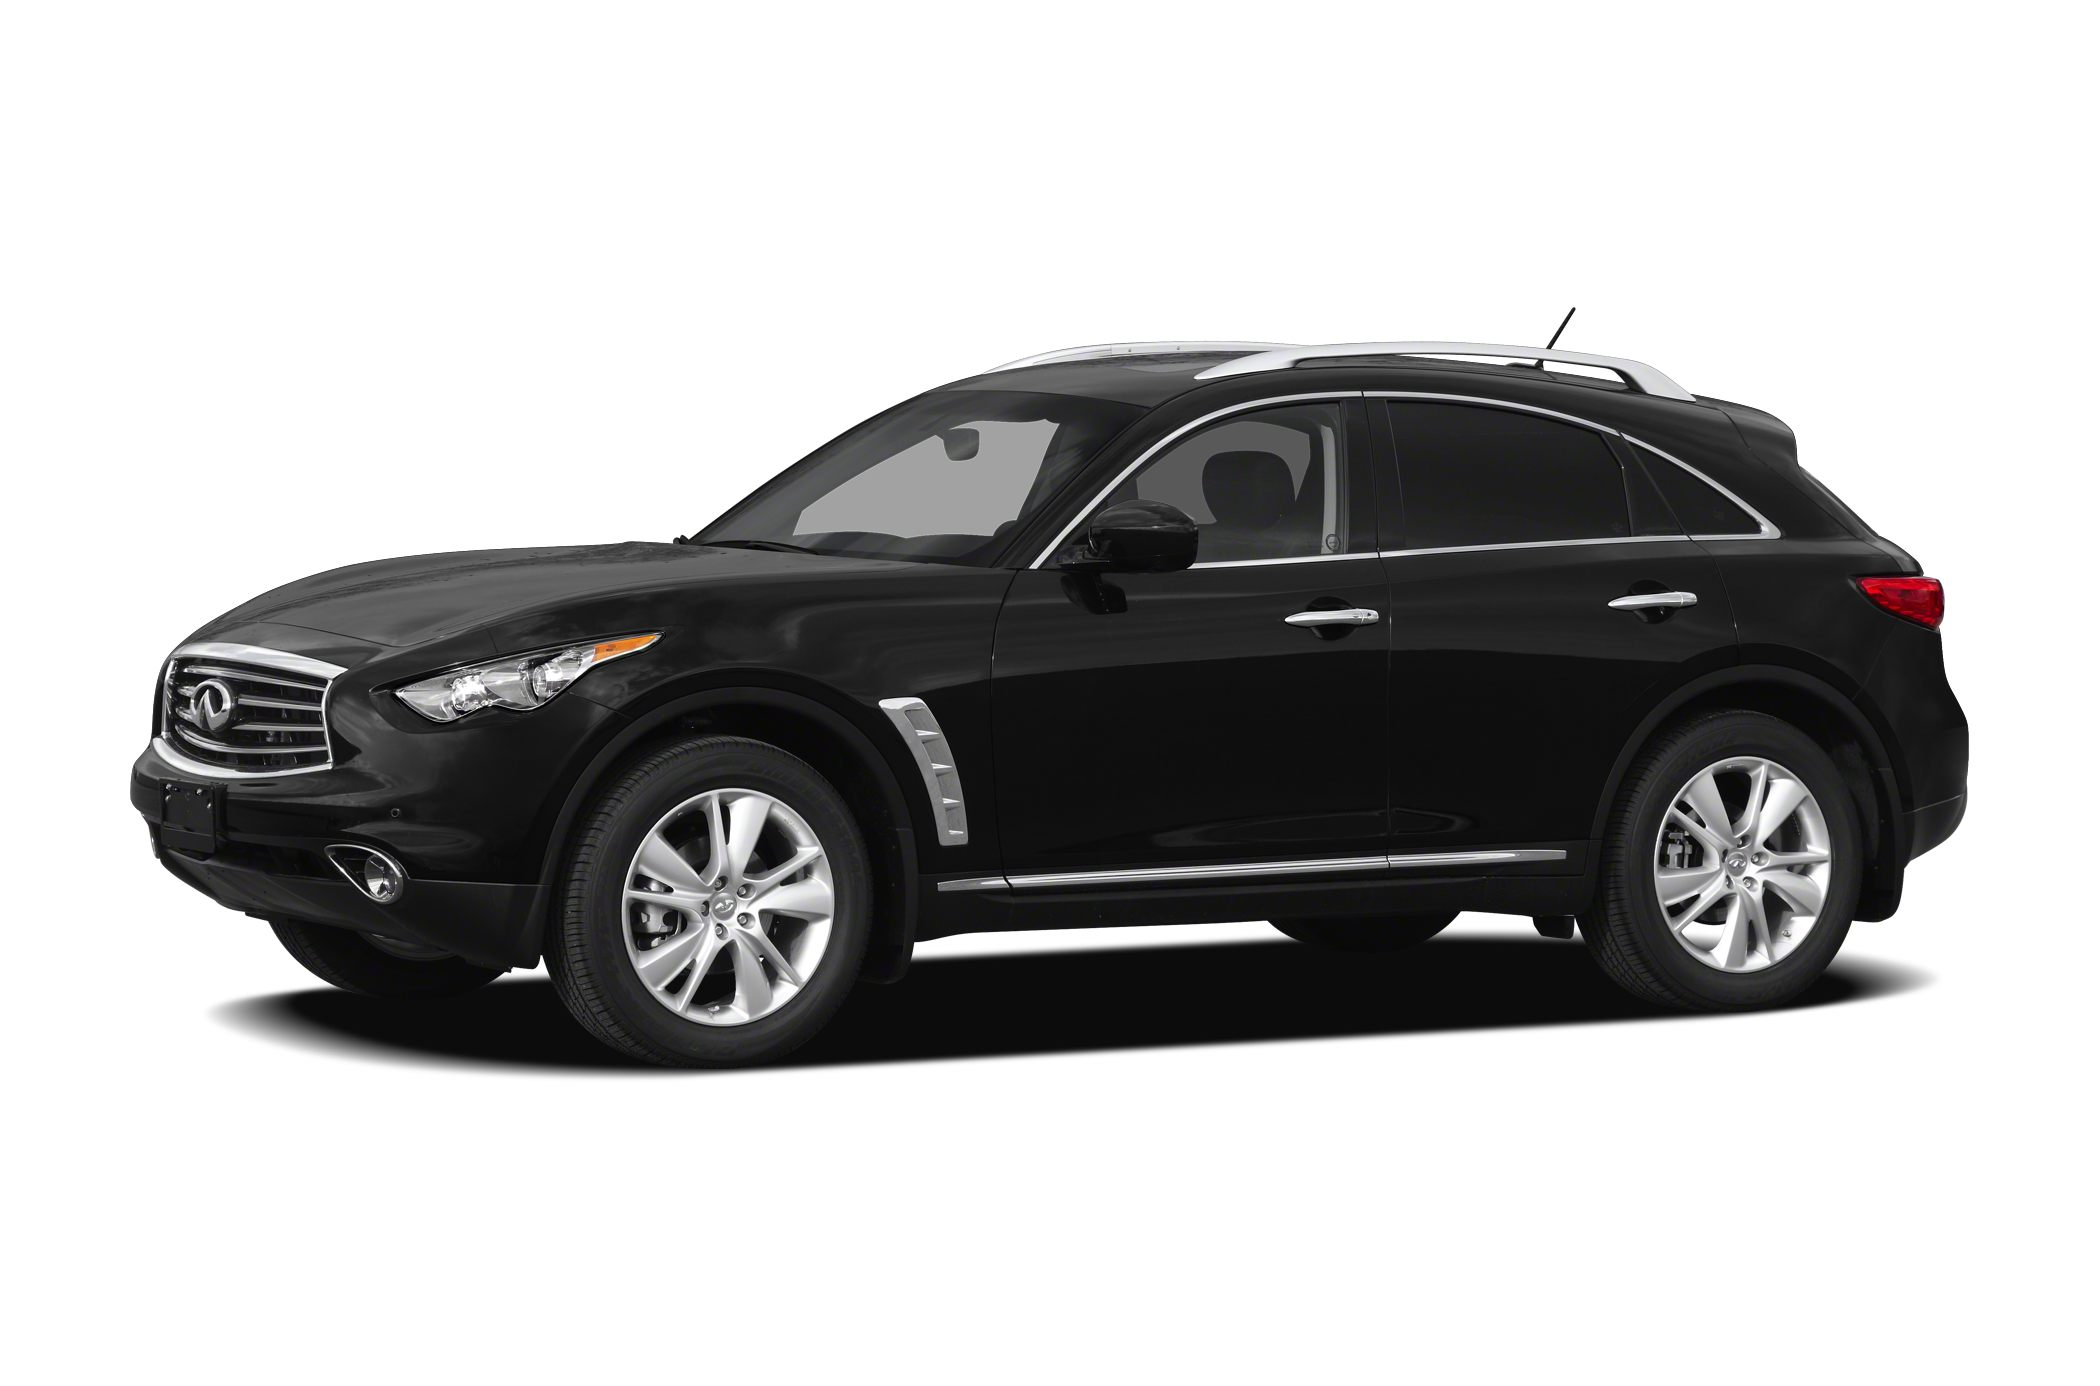 infiniti fx35 news photos and buying information autoblog. Black Bedroom Furniture Sets. Home Design Ideas